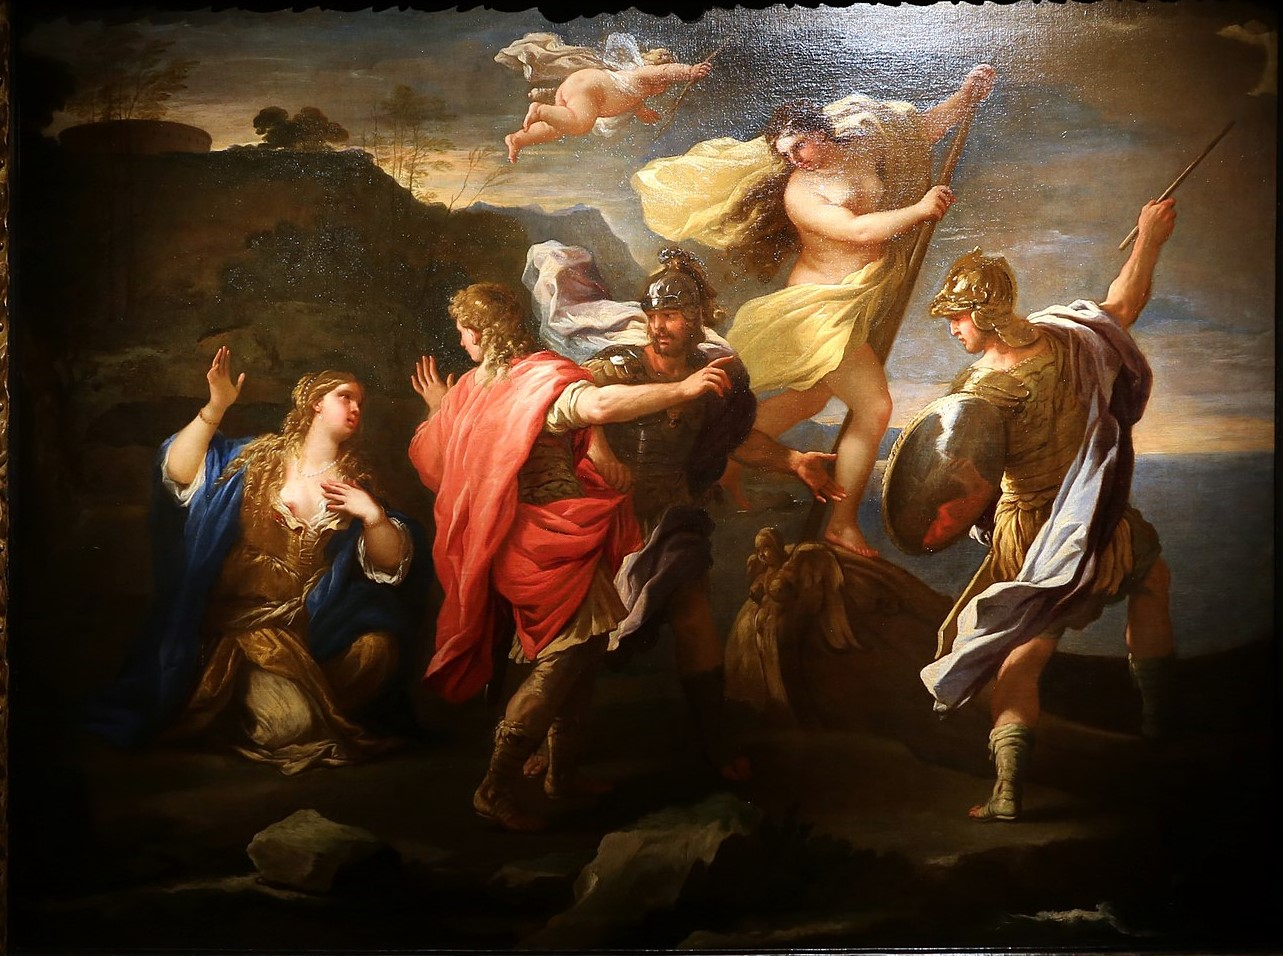 1680 Ronaldo and Armida by Luca Giordano coll part